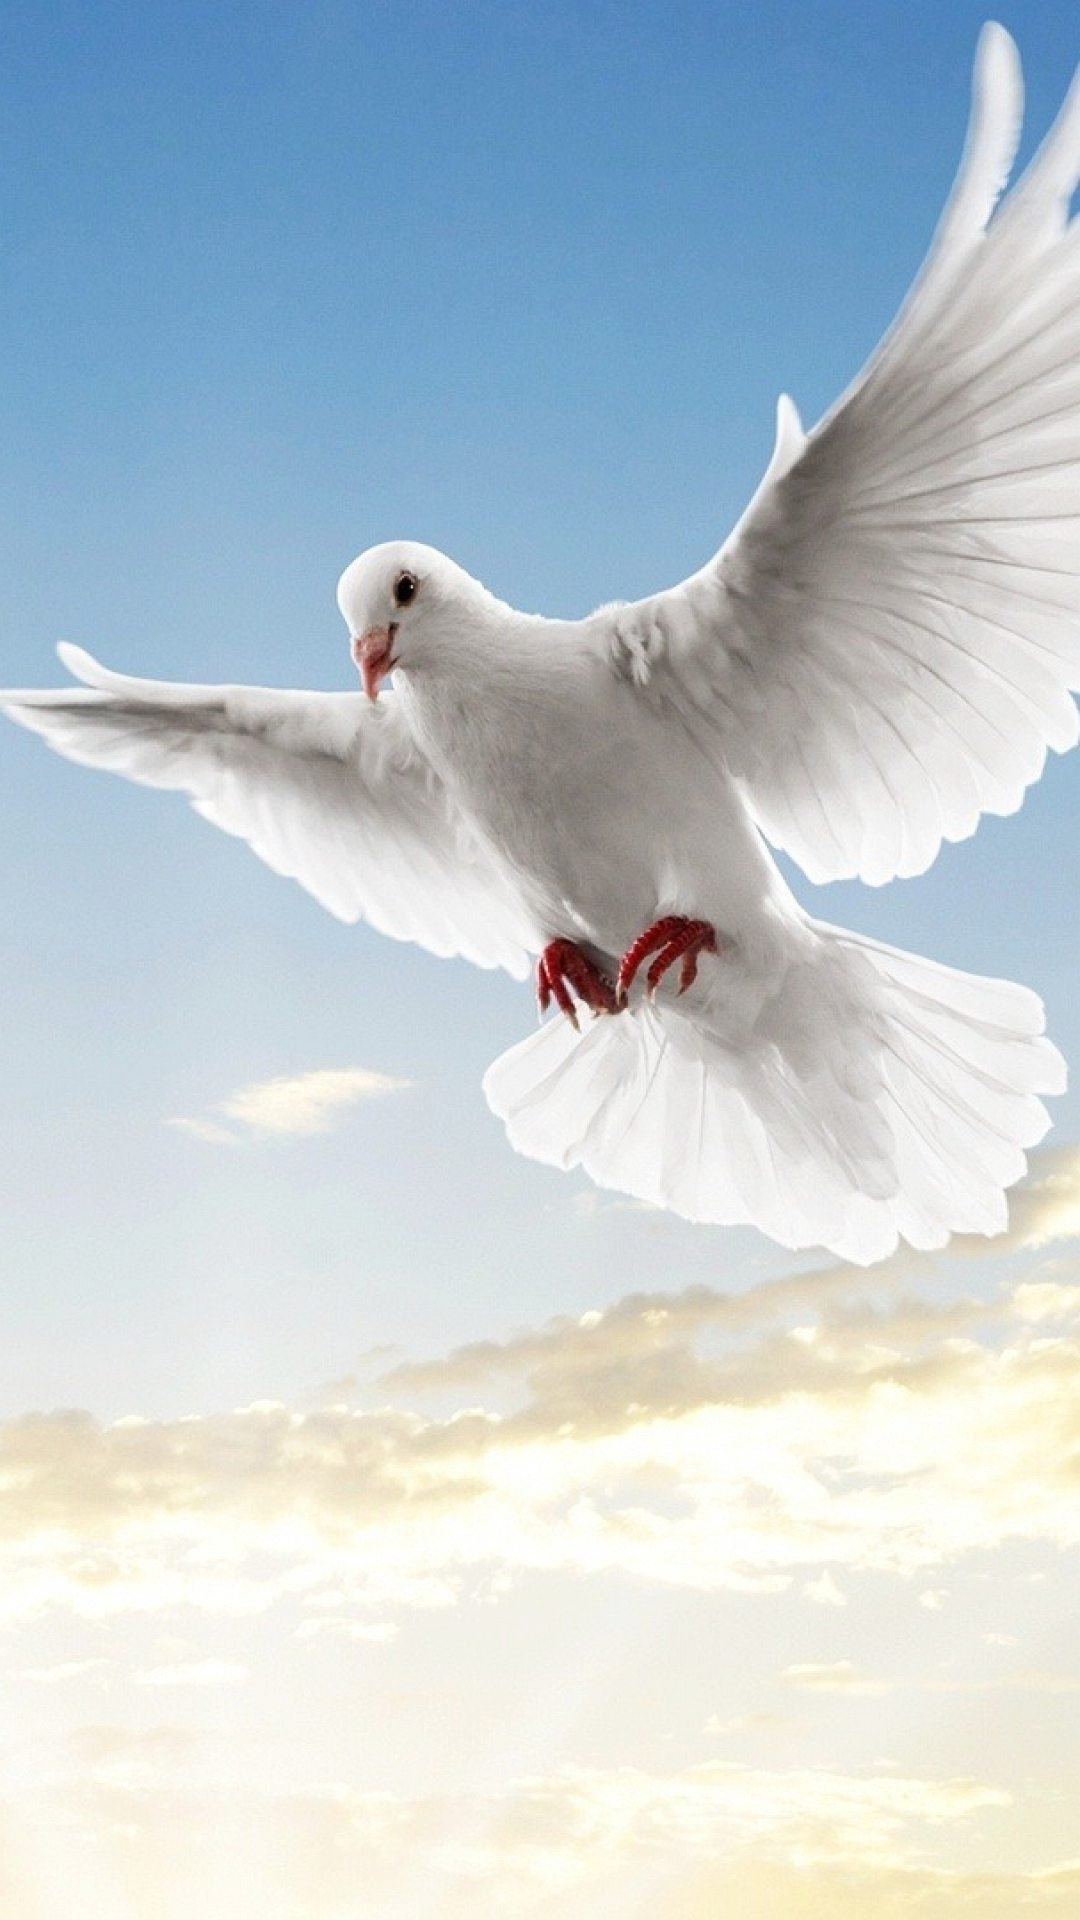 Love Dove Beautiful Wallpaper : Dove peace symbol - Best htc one wallpapers, free and easy to download